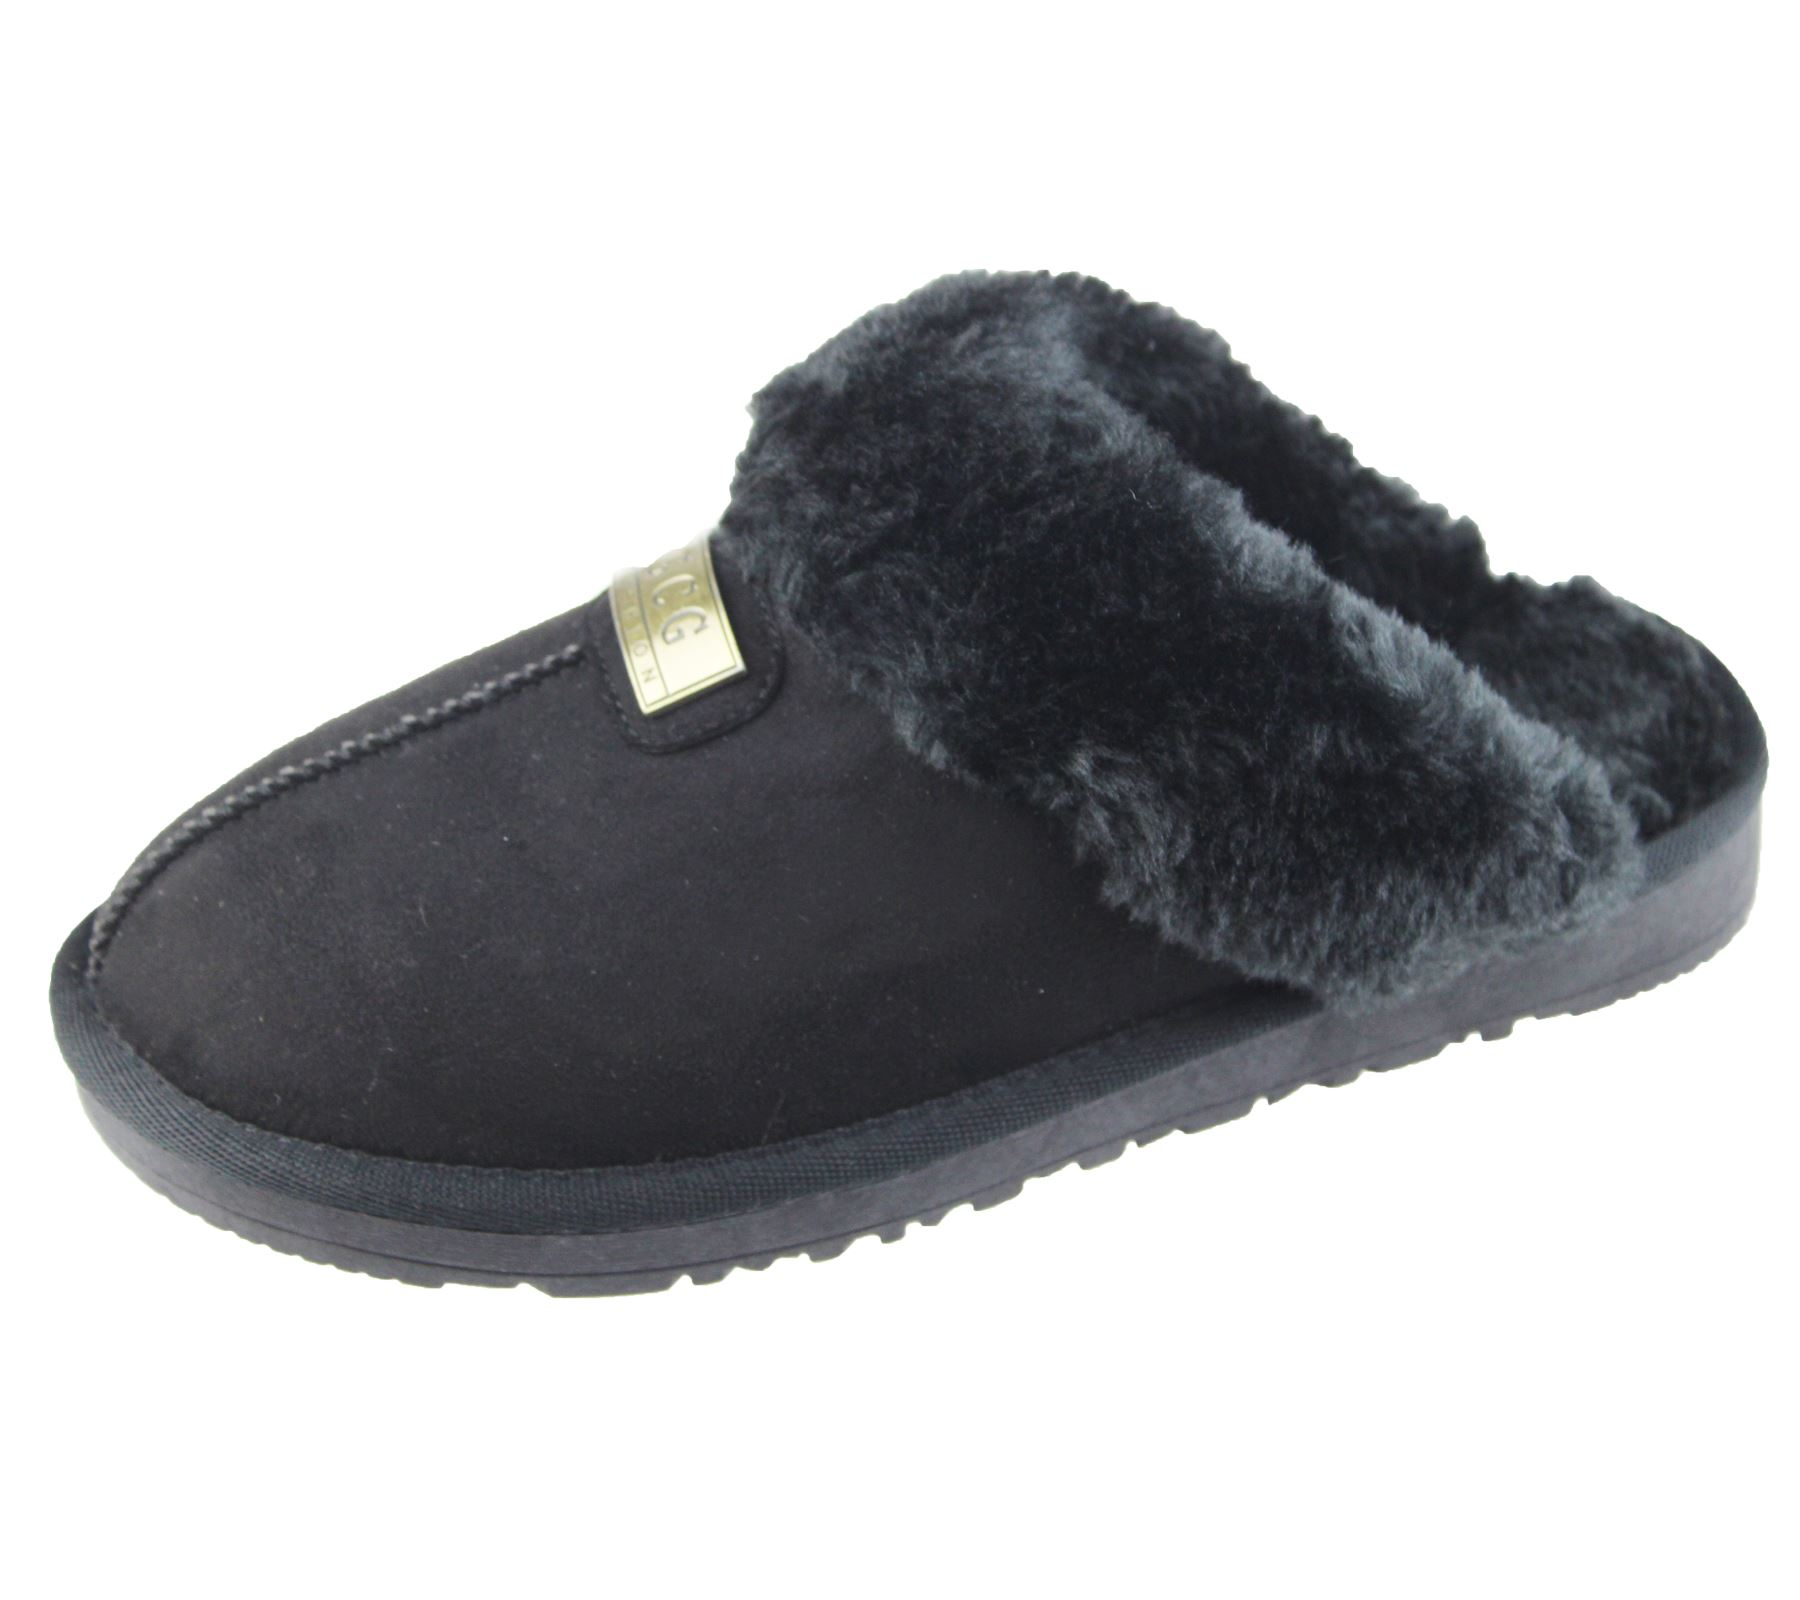 Womens-Fur-Lined-Slippers-Ladies-Mules-Non-Slip-Rubber-Sole-Shoes miniatura 7